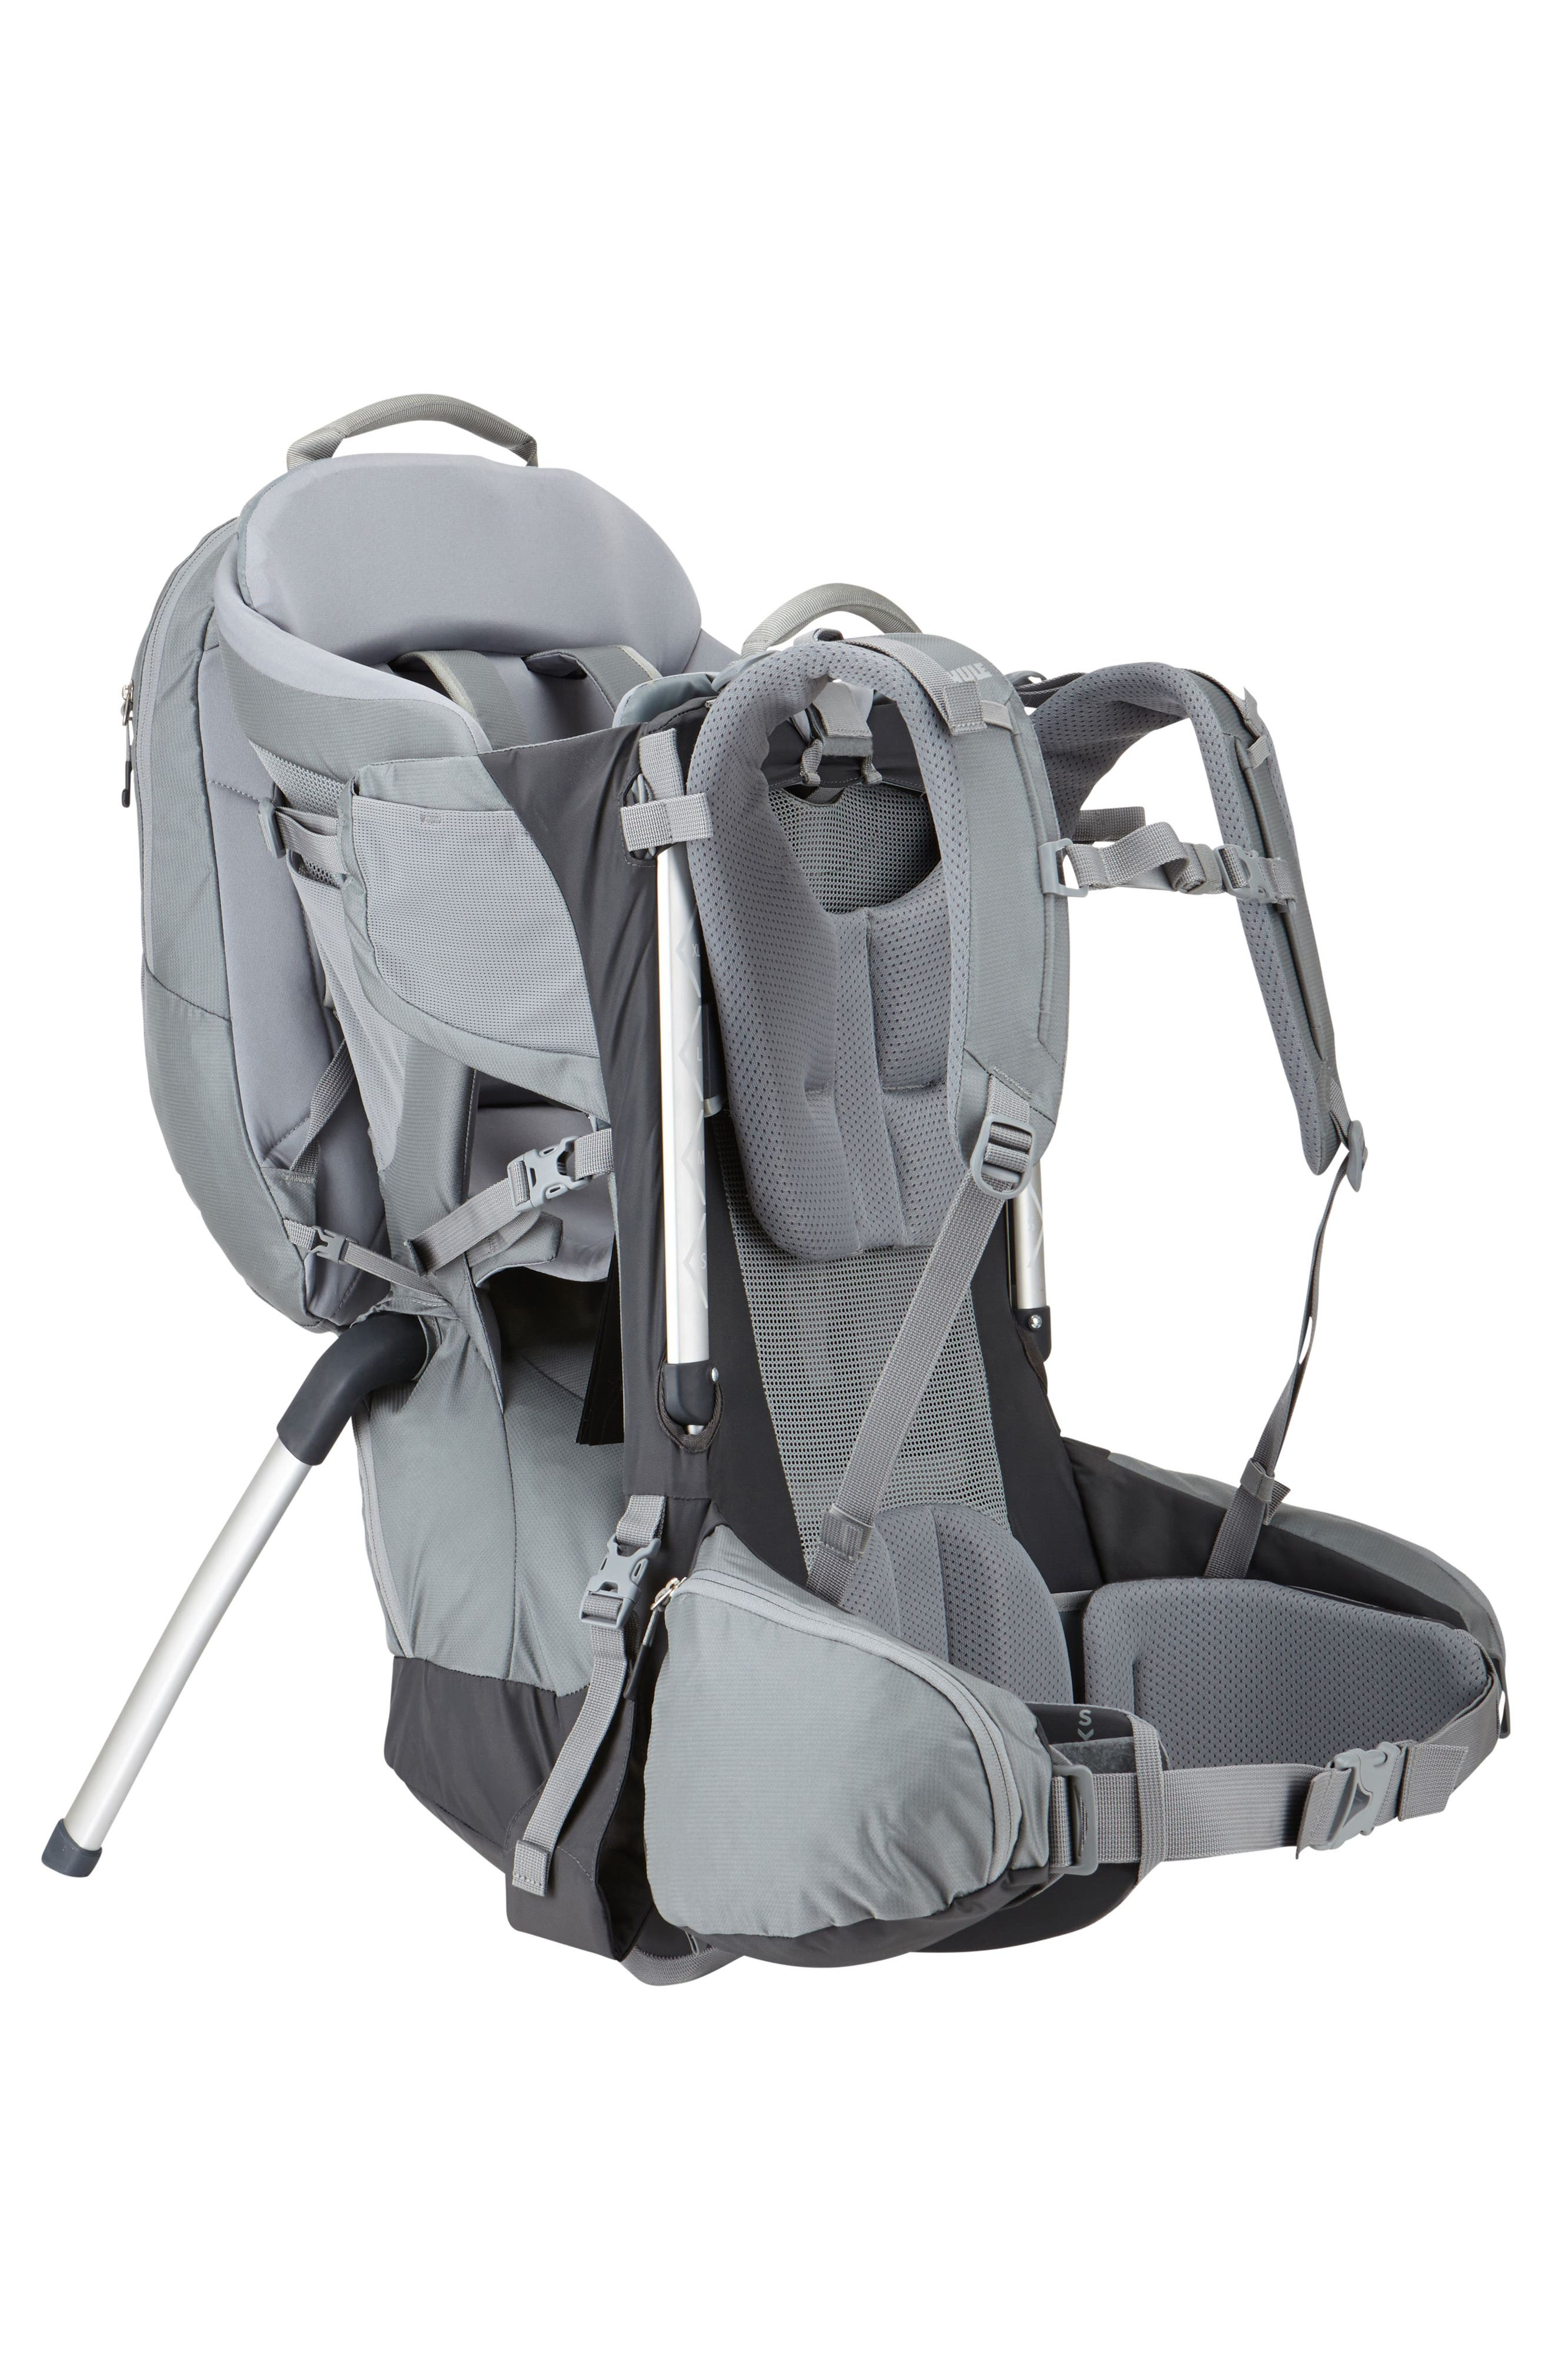 Sapling Elite Child Carrier,                             Alternate thumbnail 2, color,                             DARK SHADOW/ SLATE